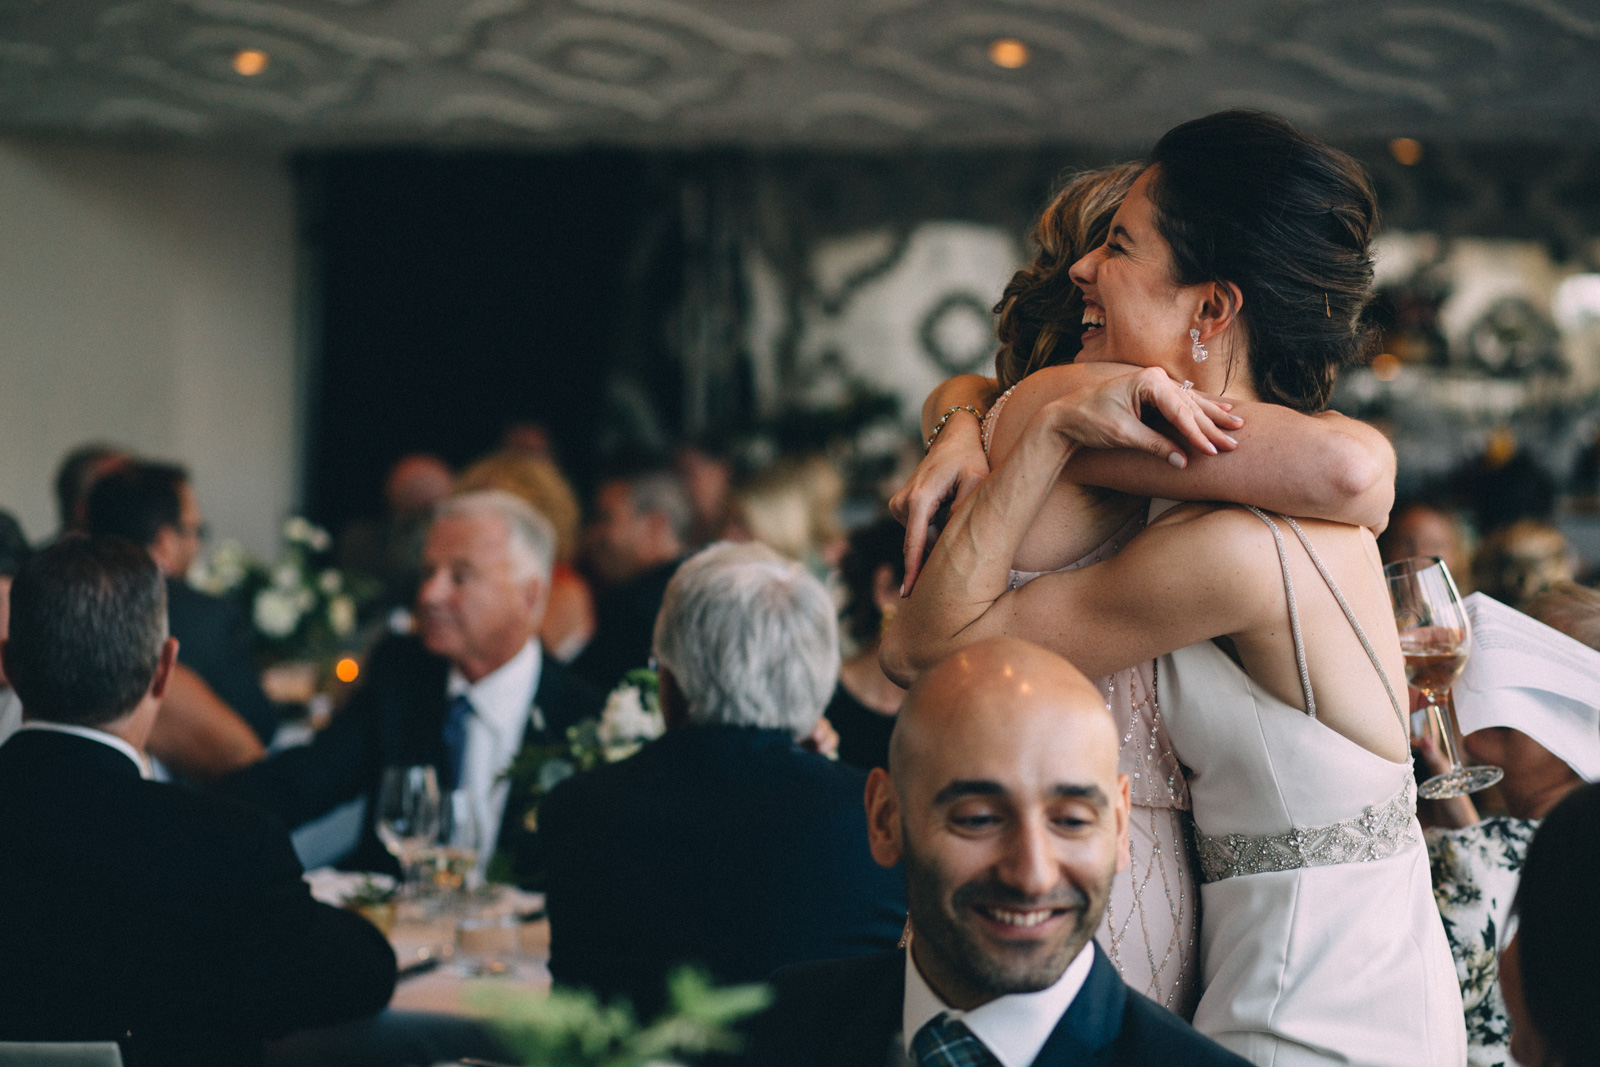 Malaparte-wedding-photography-Toronto-by-Sam-Wong-of-Artanis-Collective_65.jpg